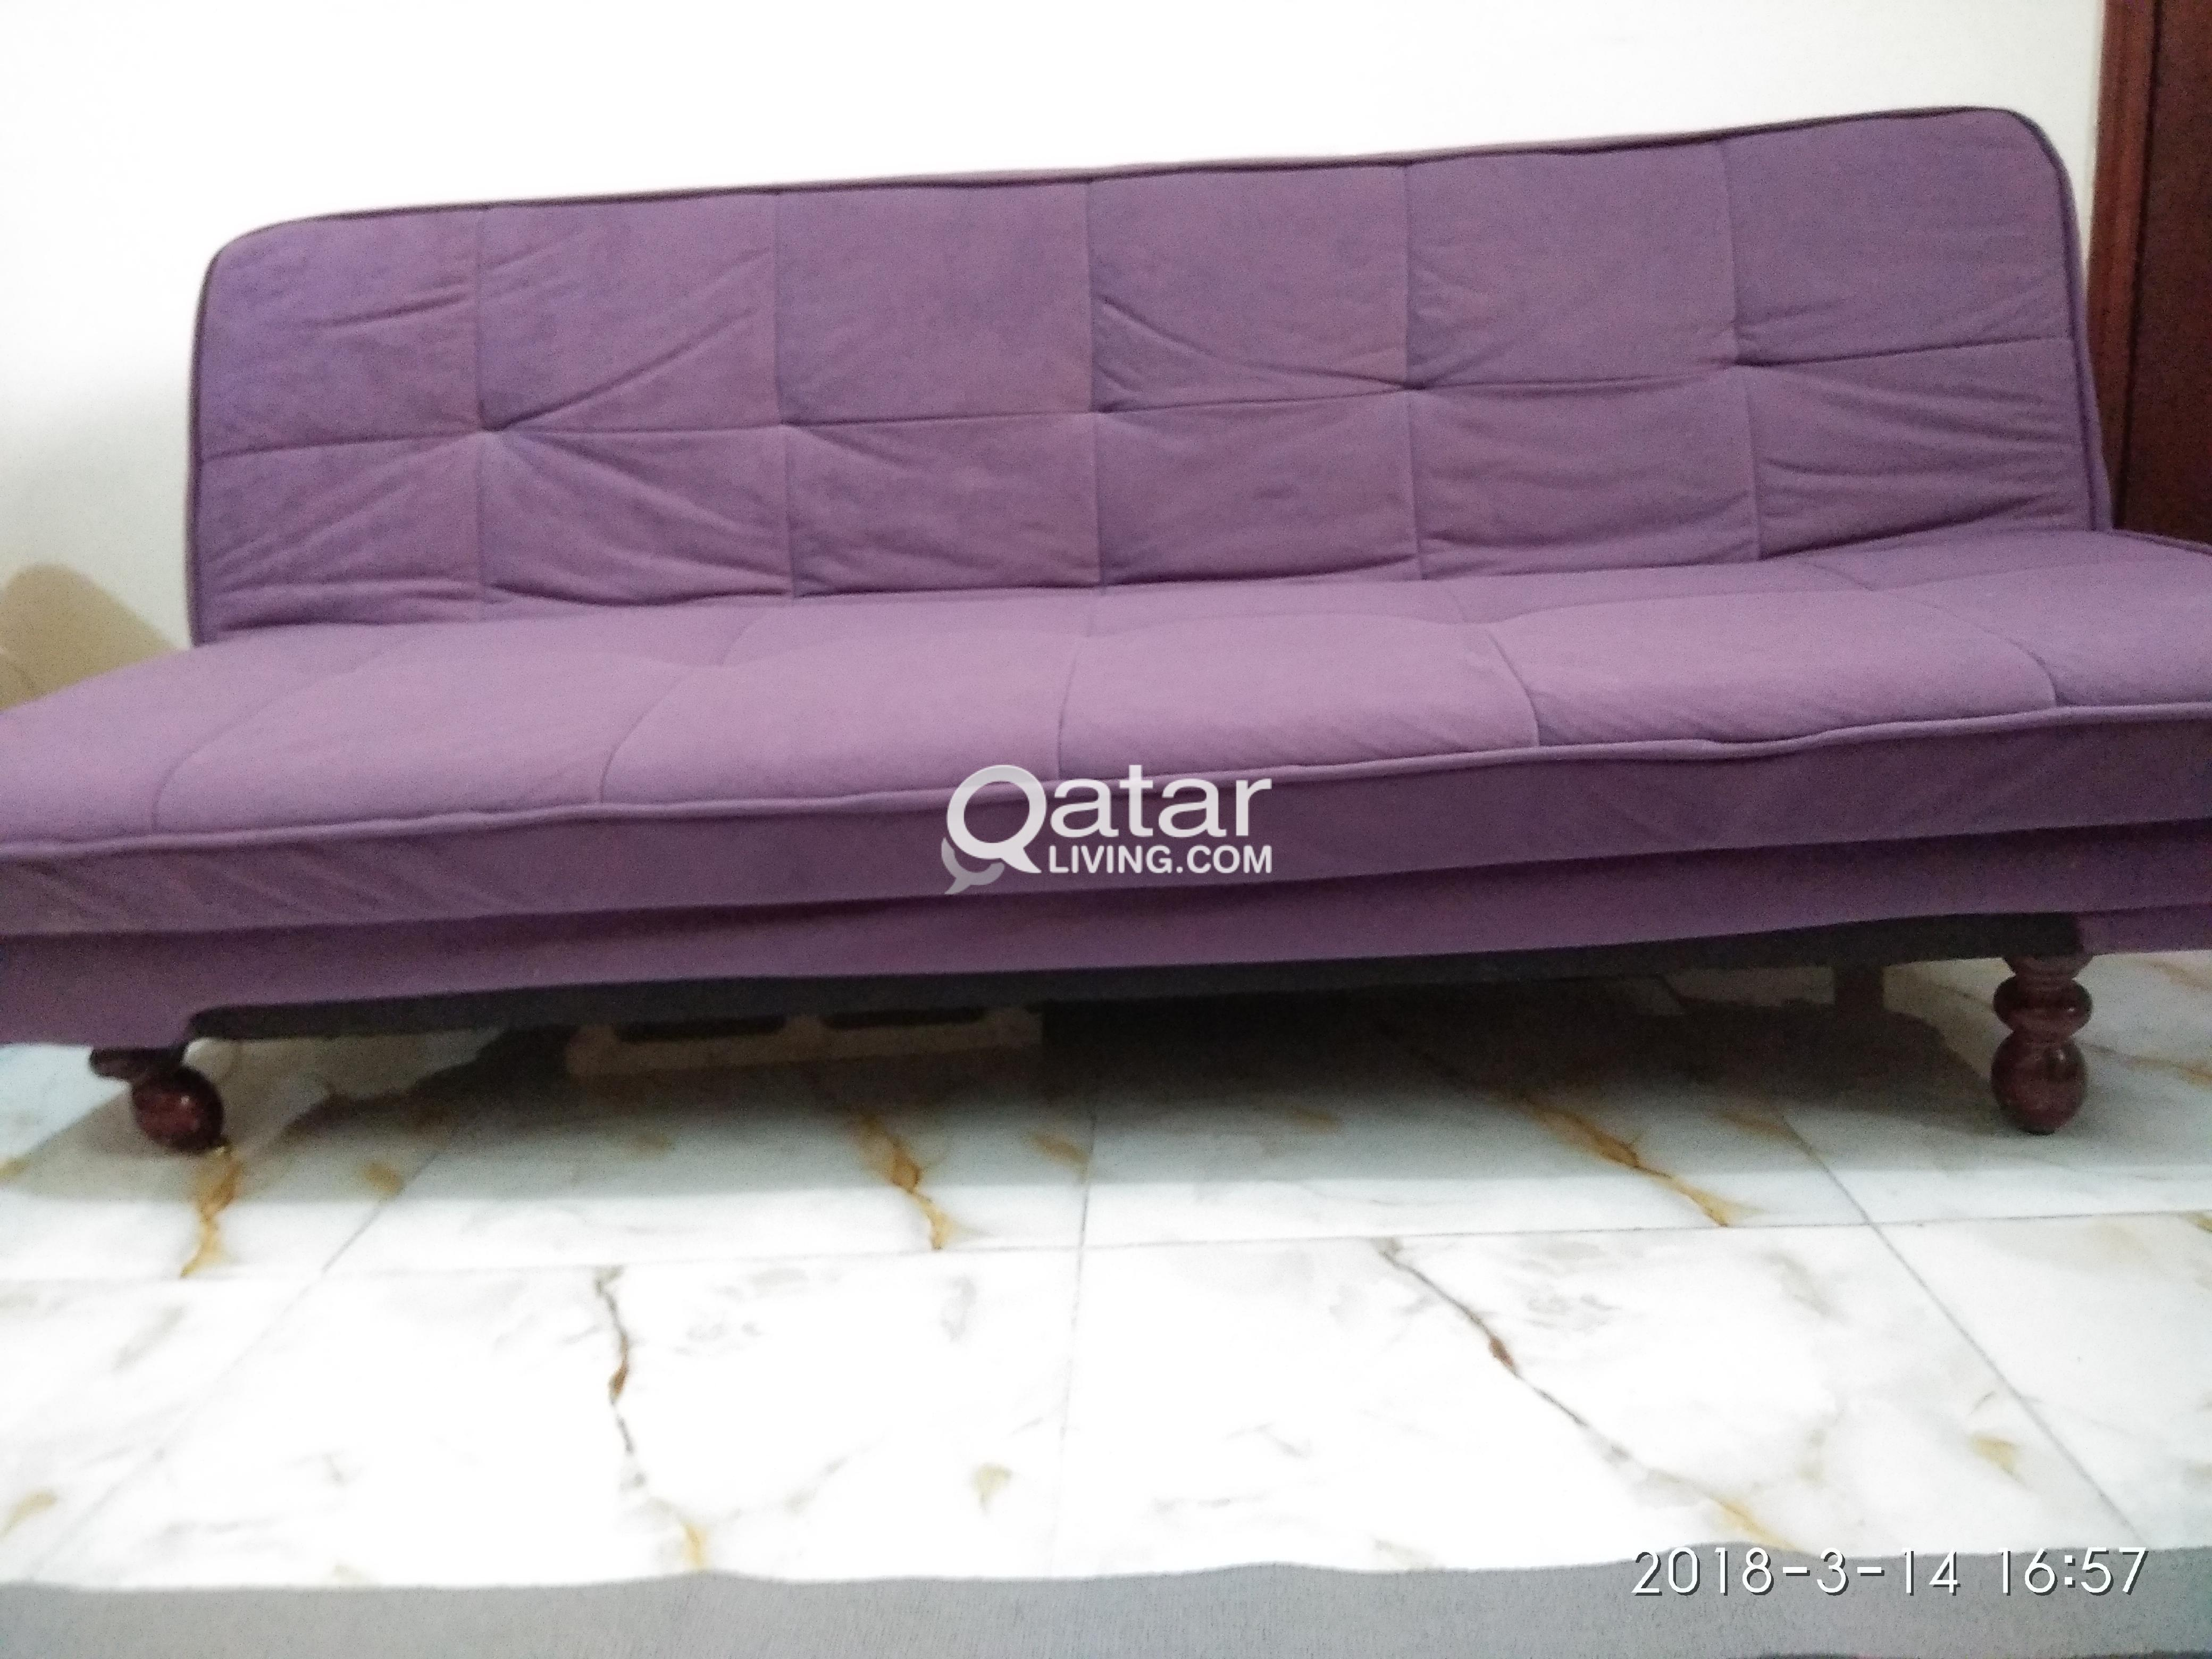 official photos f0eb5 796ca Used Sofa bed for sale | Qatar Living